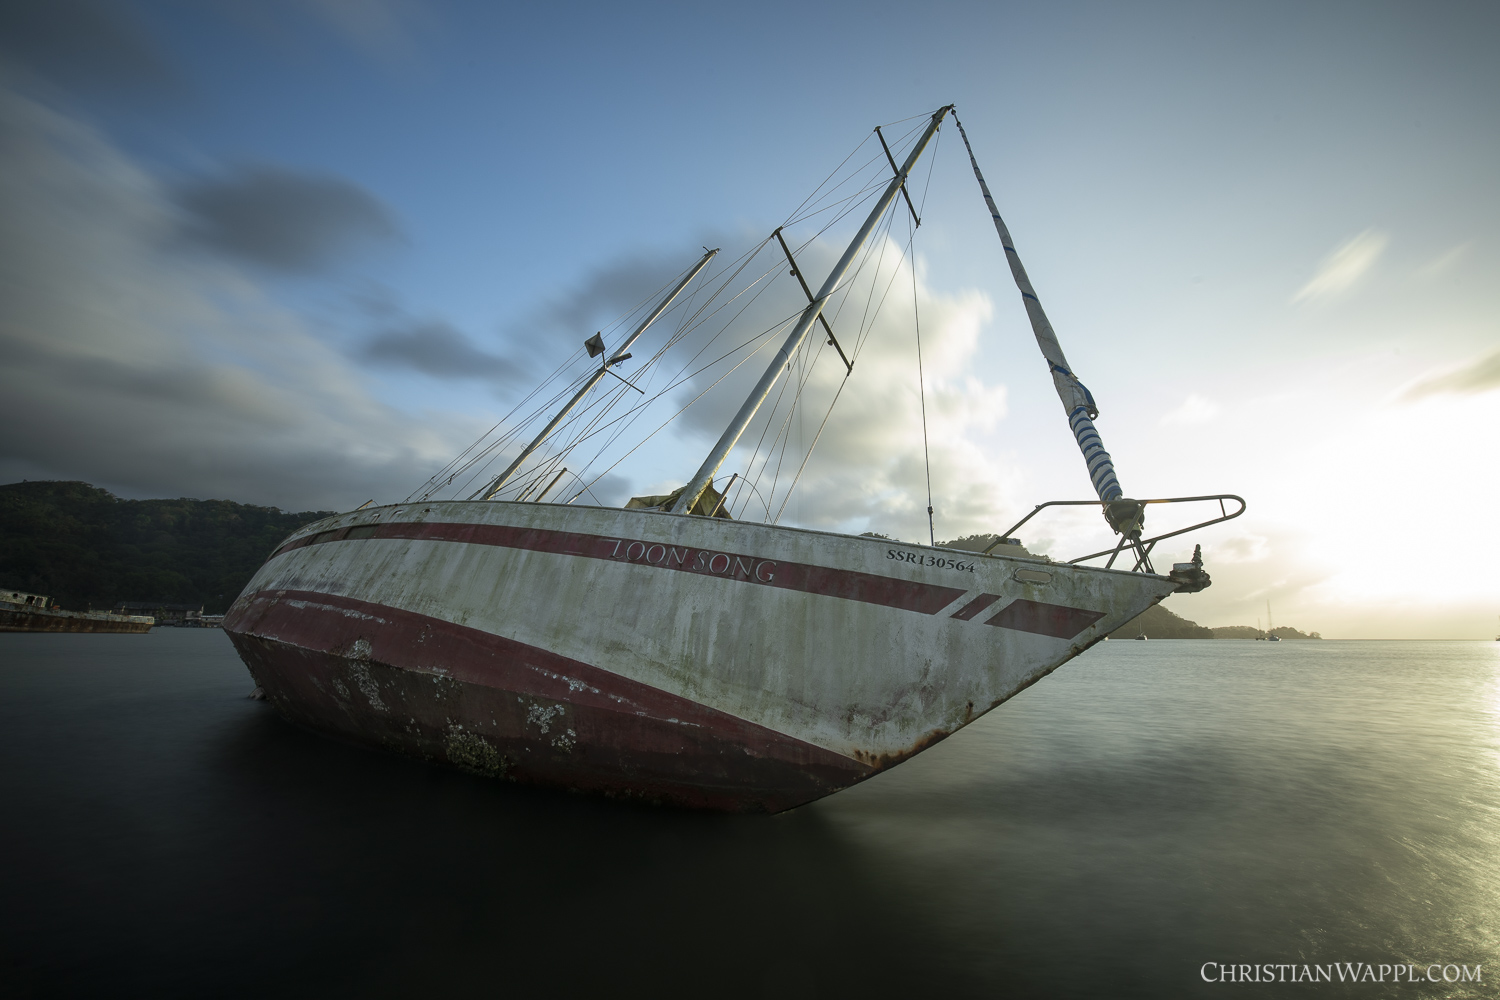 Wreck of the SY  Loonsong , Panama